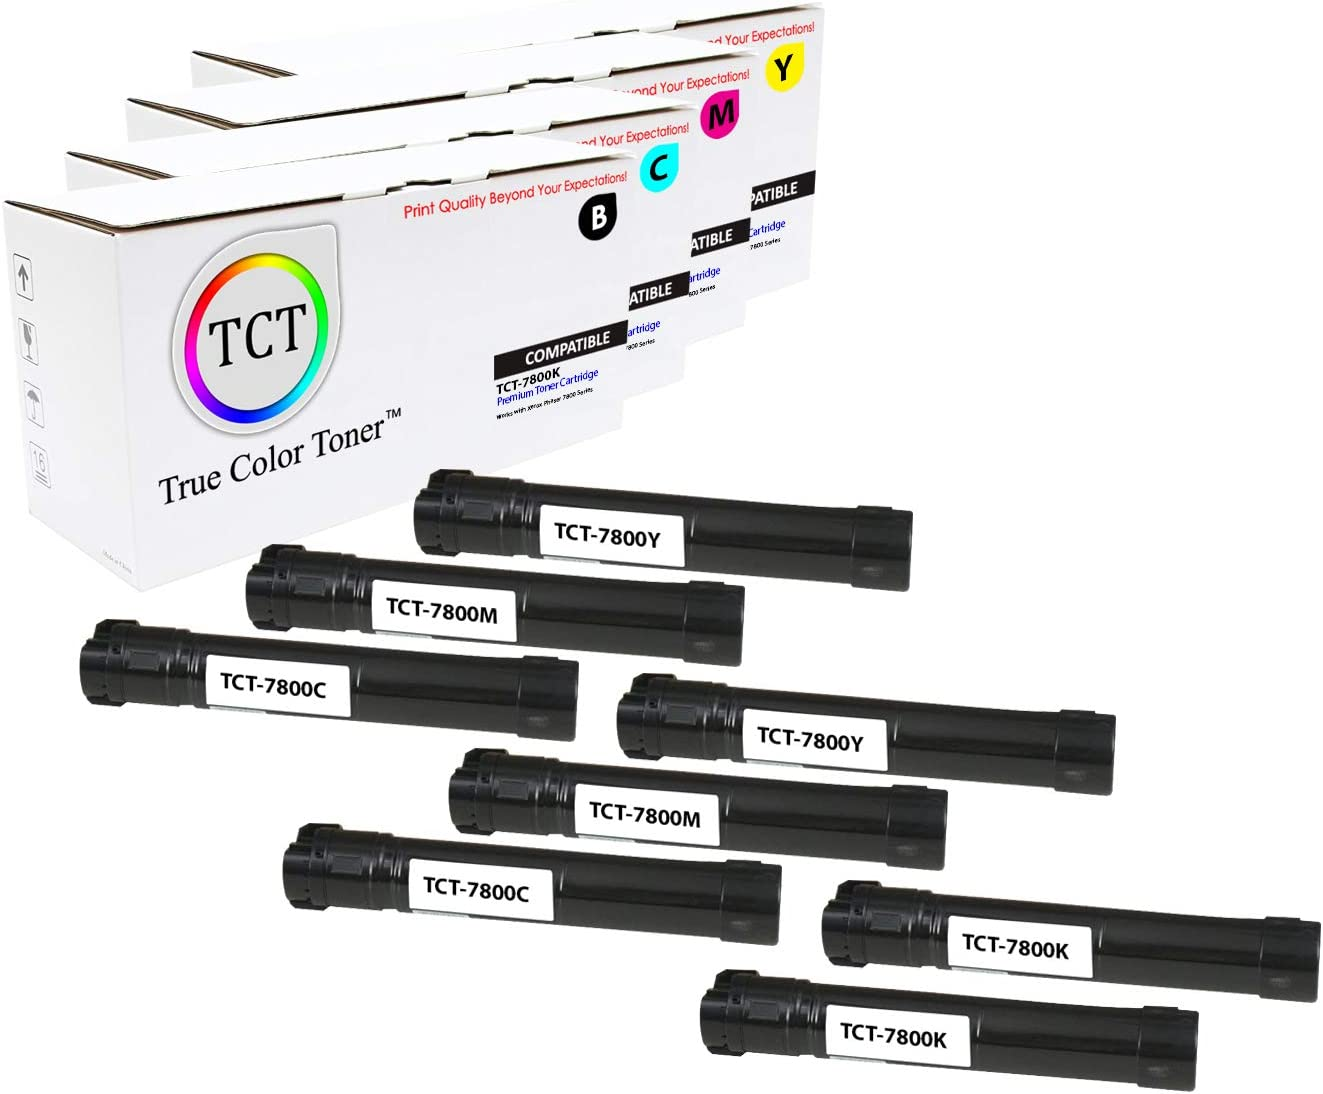 TCT Premium Compatible High Yield Toner Cartridge Replacement for Xerox Phaser 7800 Printers 8 Pack Black 106R01569, Cyan 106R01566, Magenta 106R01567, Yellow 106R01568